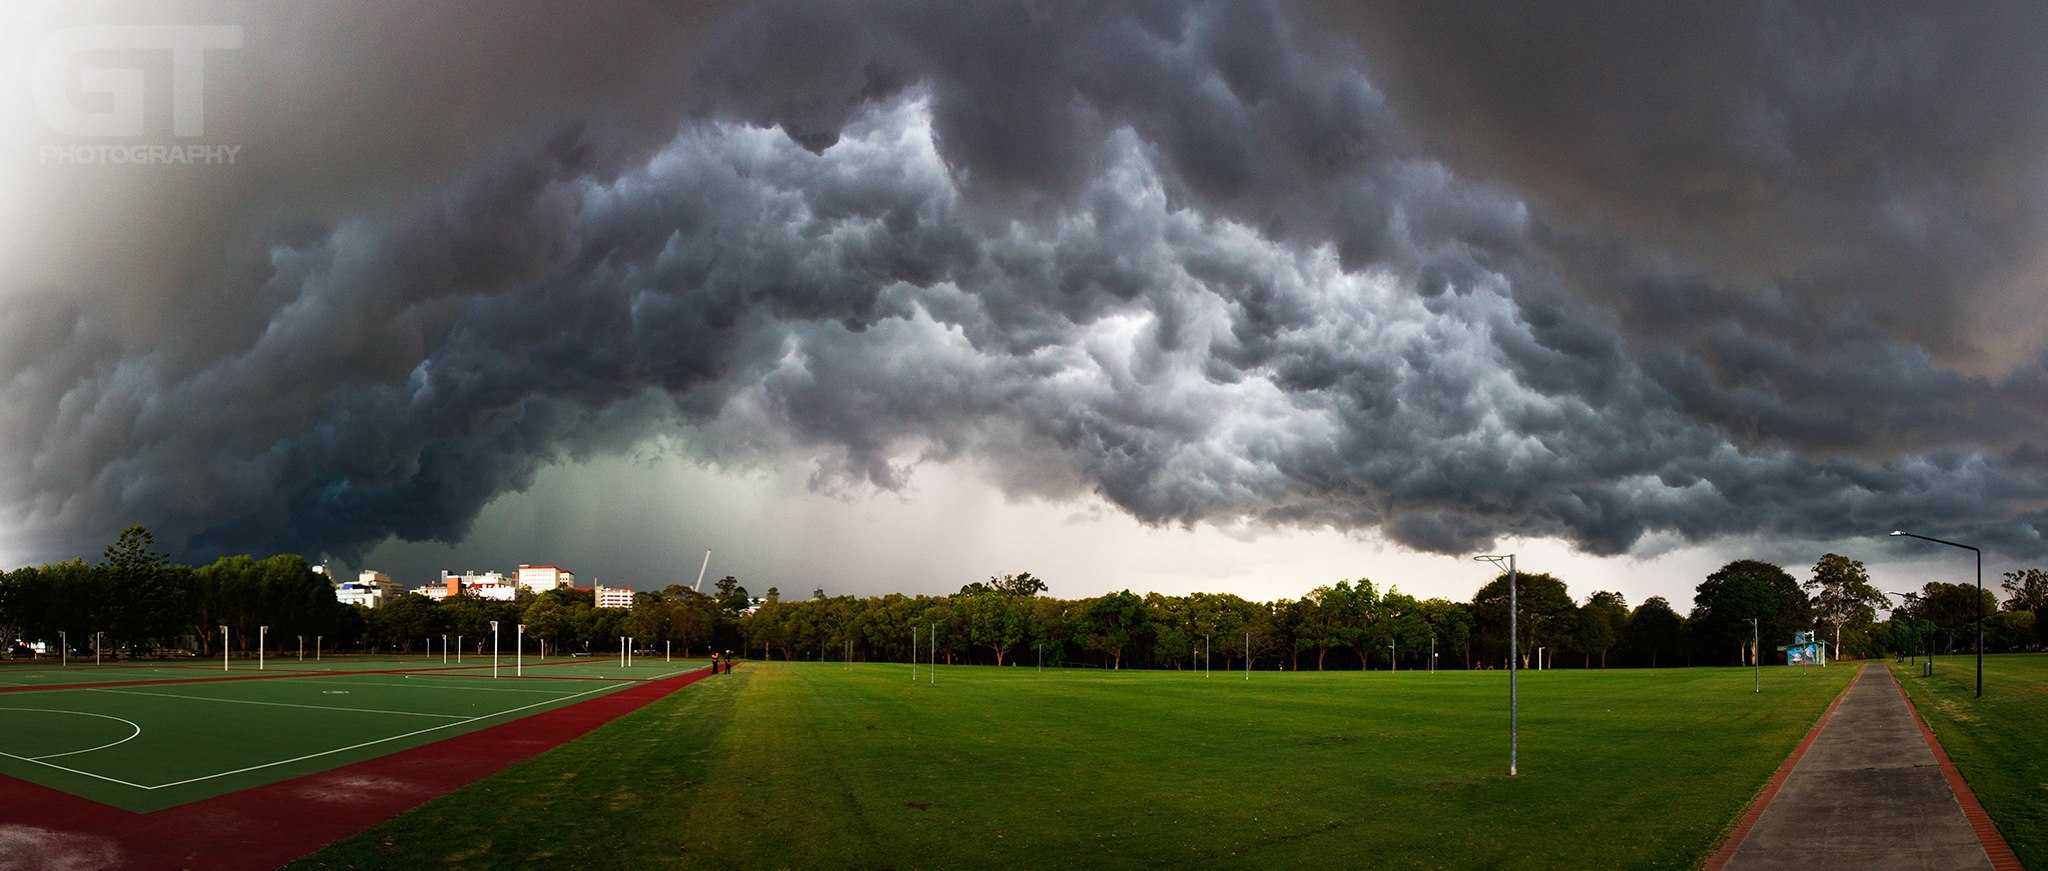 """""""In to the whales mouth"""" Turbulent clouds boil overhead as the gust front from a severe thunderstorm passes over. 14th November, 2013. Brisbane, Australia."""